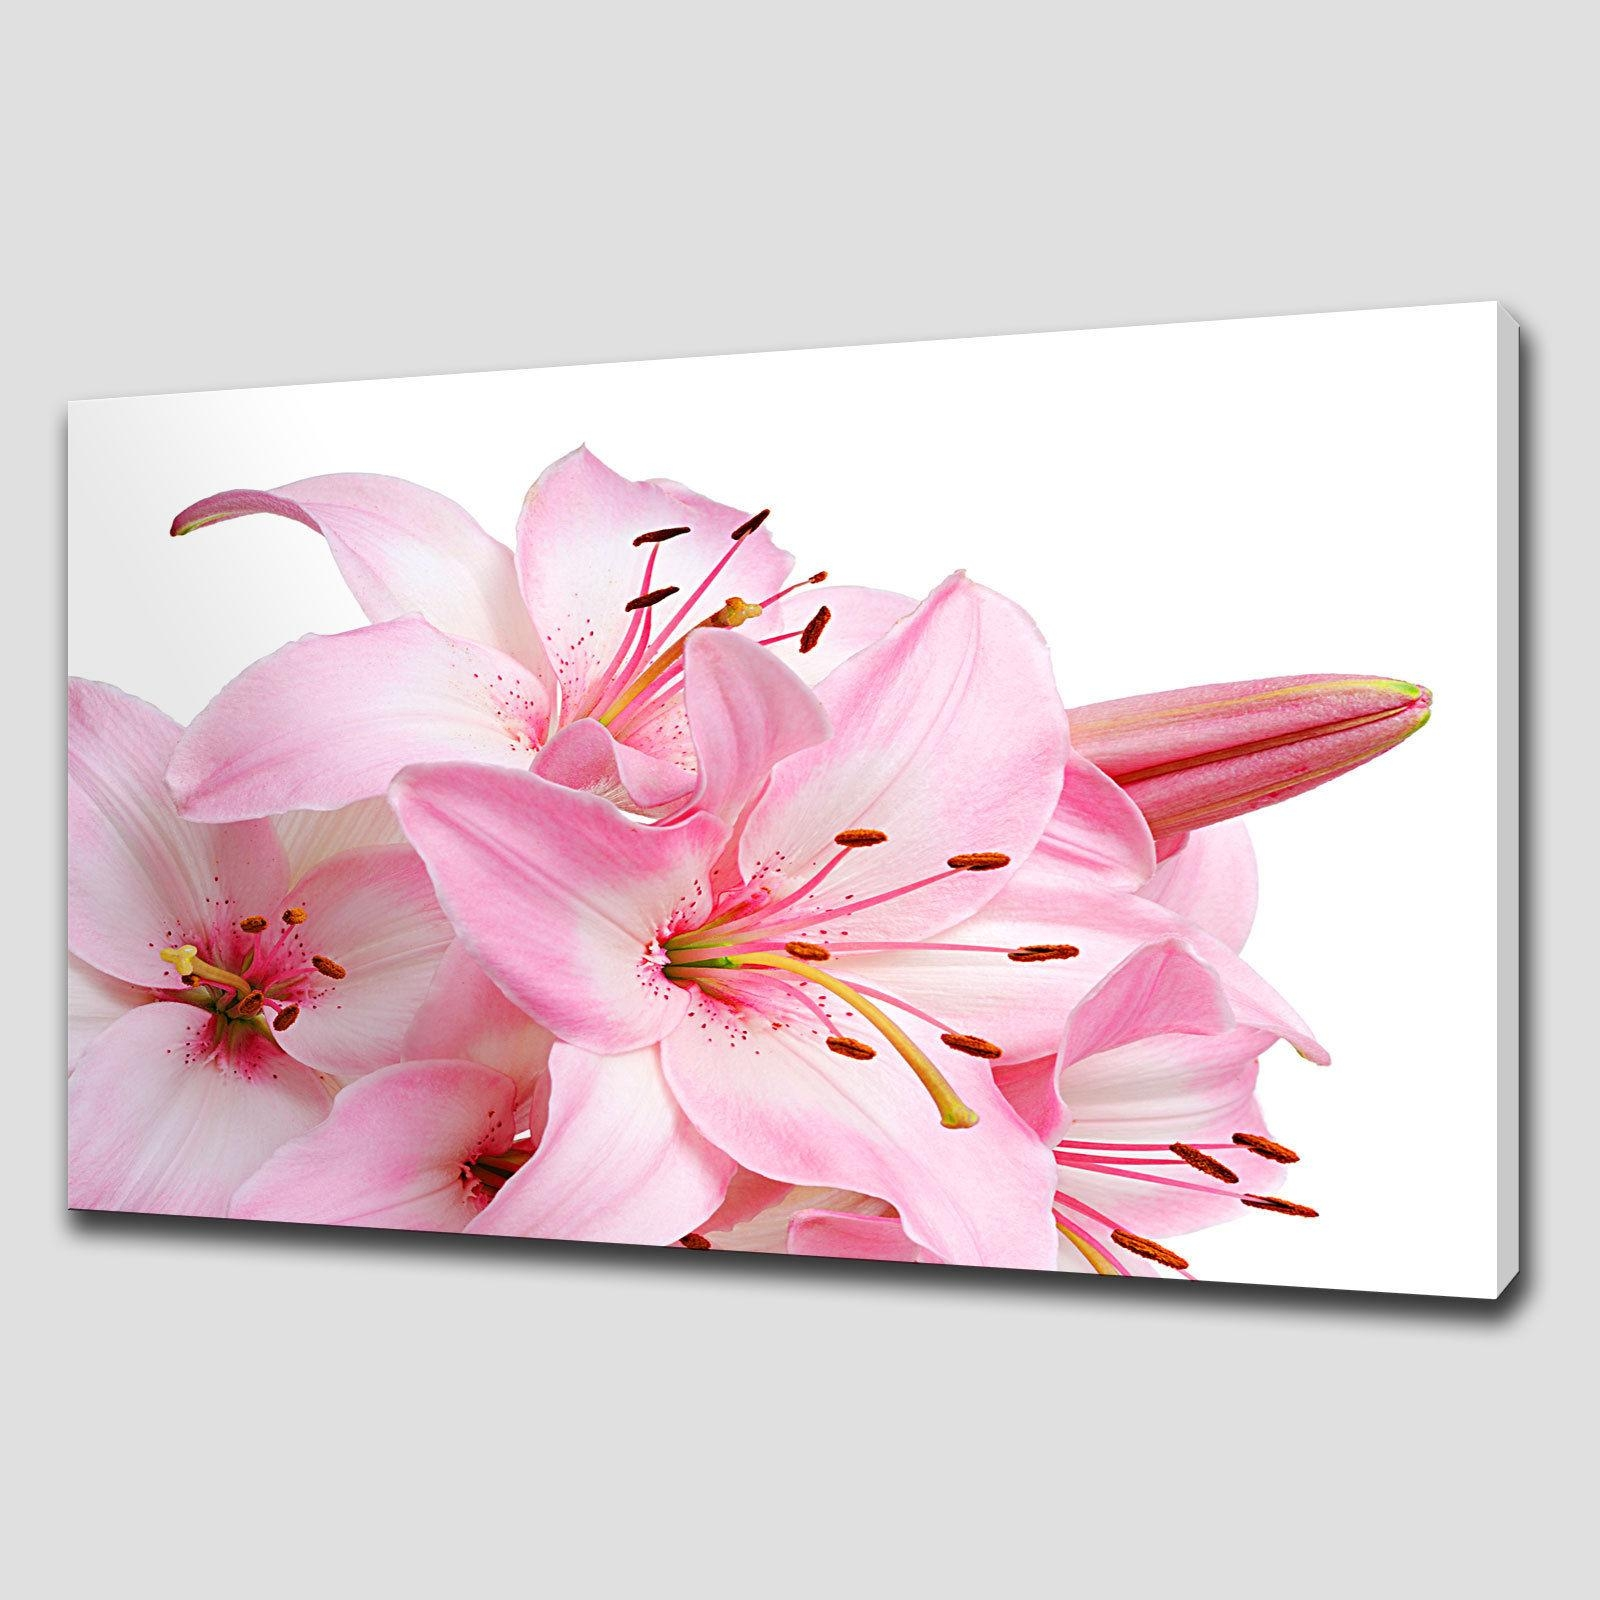 Wall Art Designs: Canvas Floral Wall Art Flowers Paintings Large Inside Pink And White Wall Art (View 11 of 20)